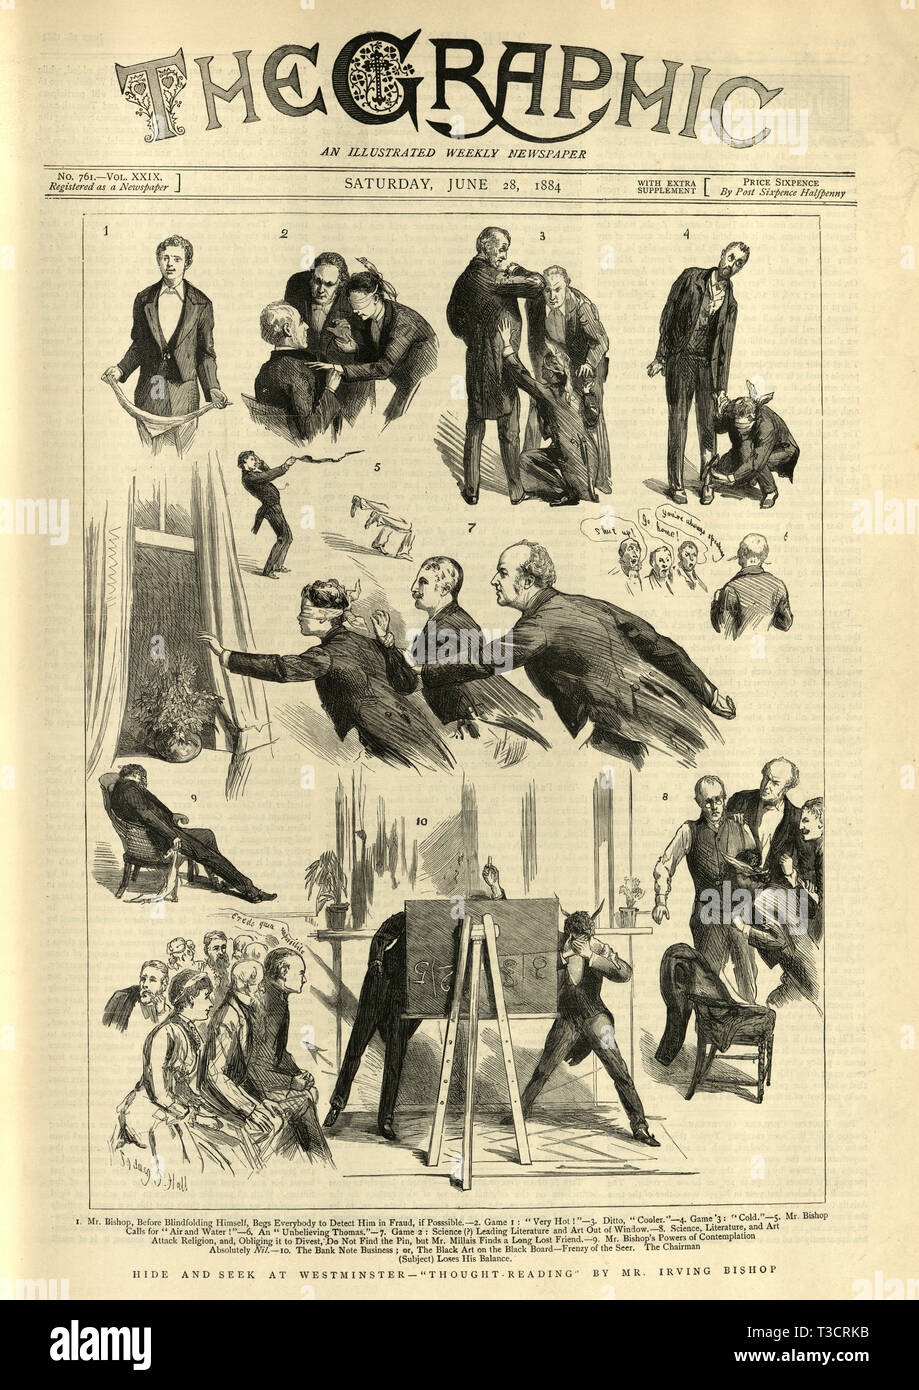 Hide and seek at Westminster, thought reading by Mr Irving Bishop. Front page of the Graphic Illustrated Newspaper June 28th, 1884 - Stock Image